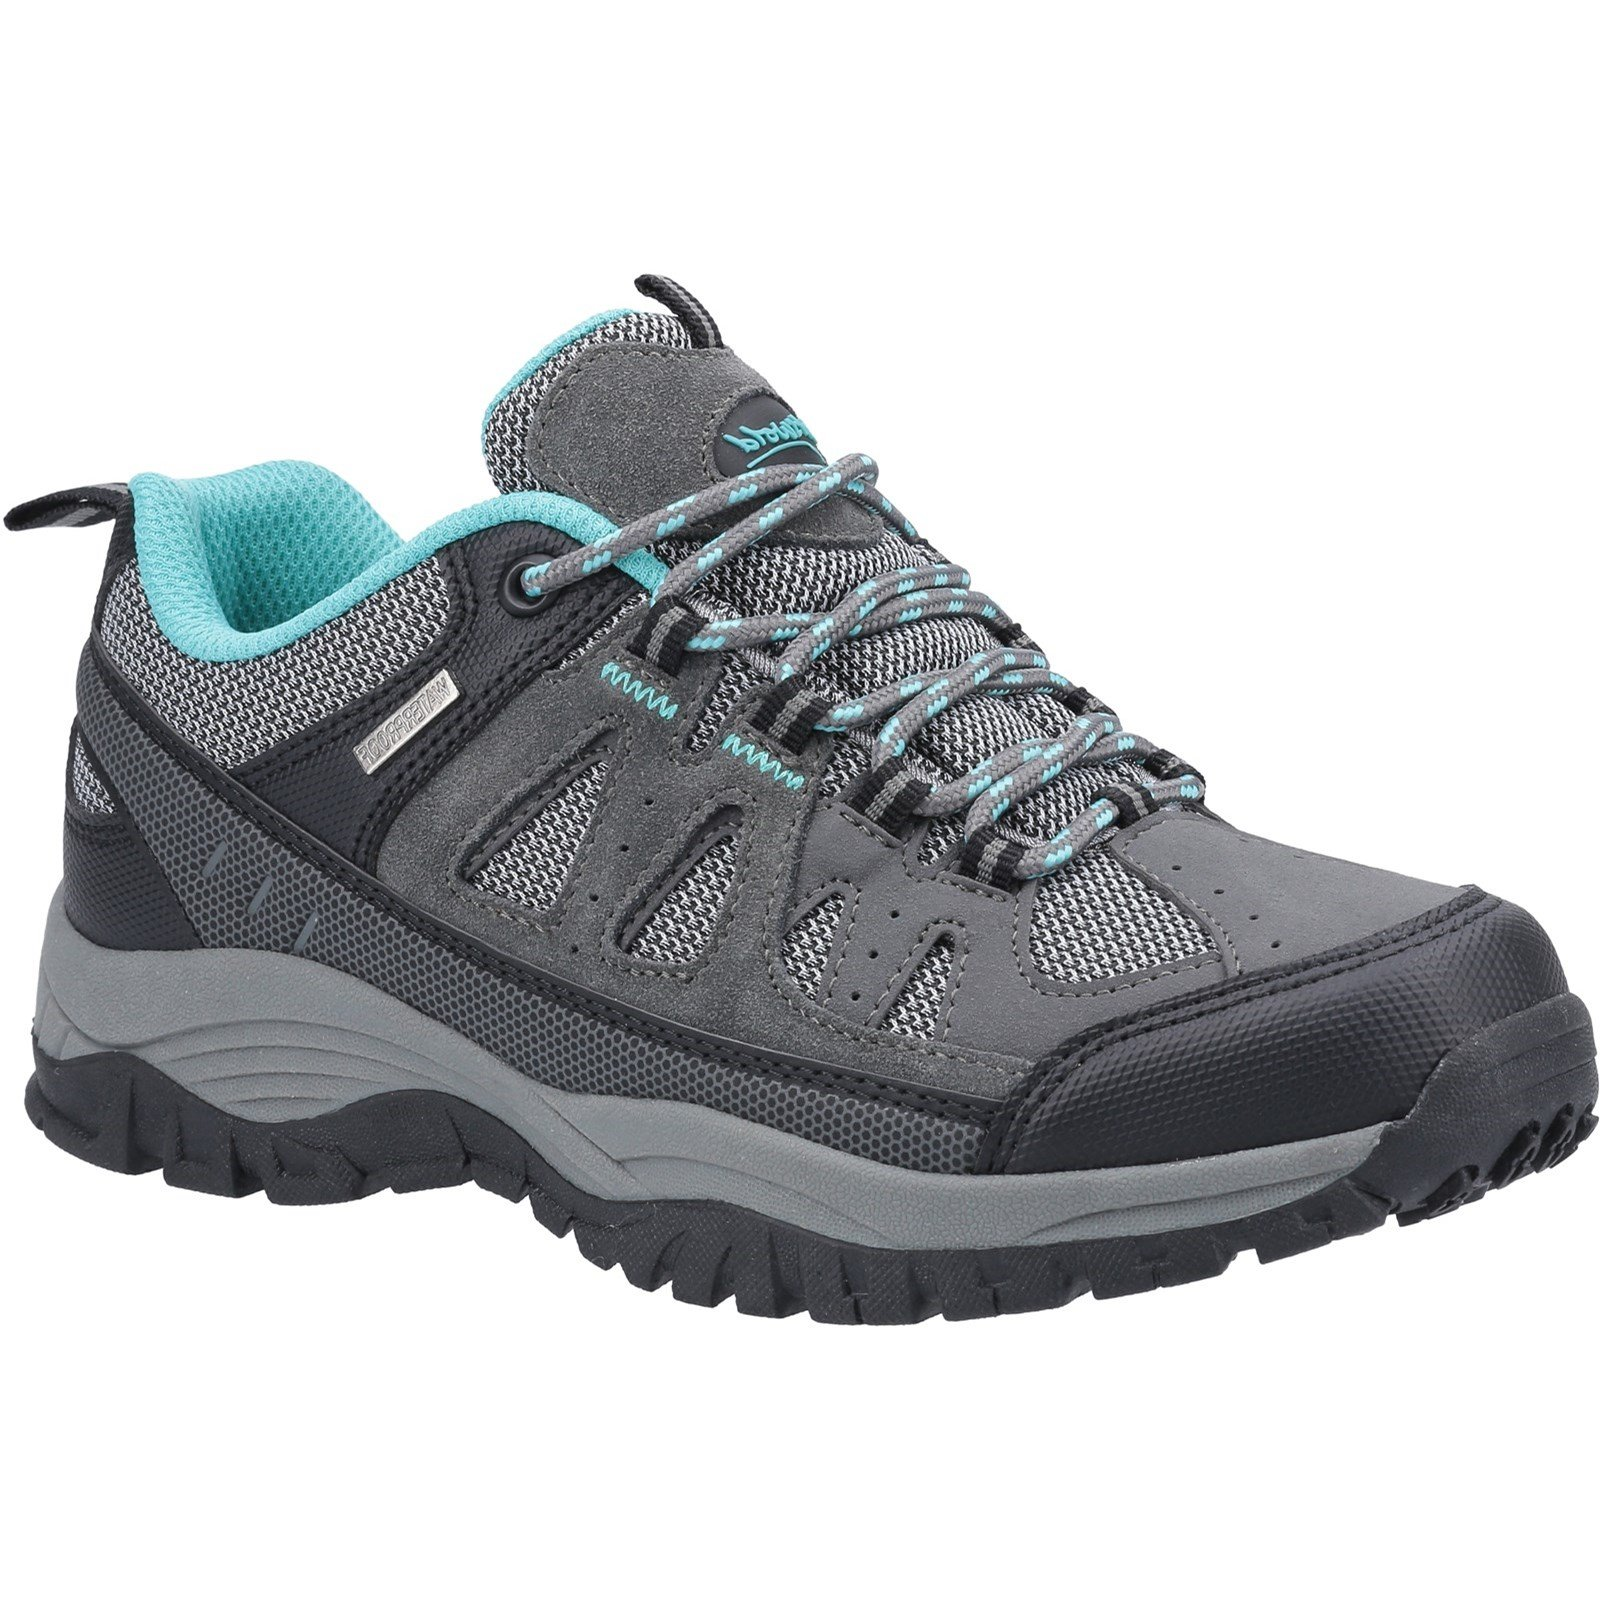 Cotswold Women's Maisemore Low Hiking Boot Grey 32988 - Grey 5